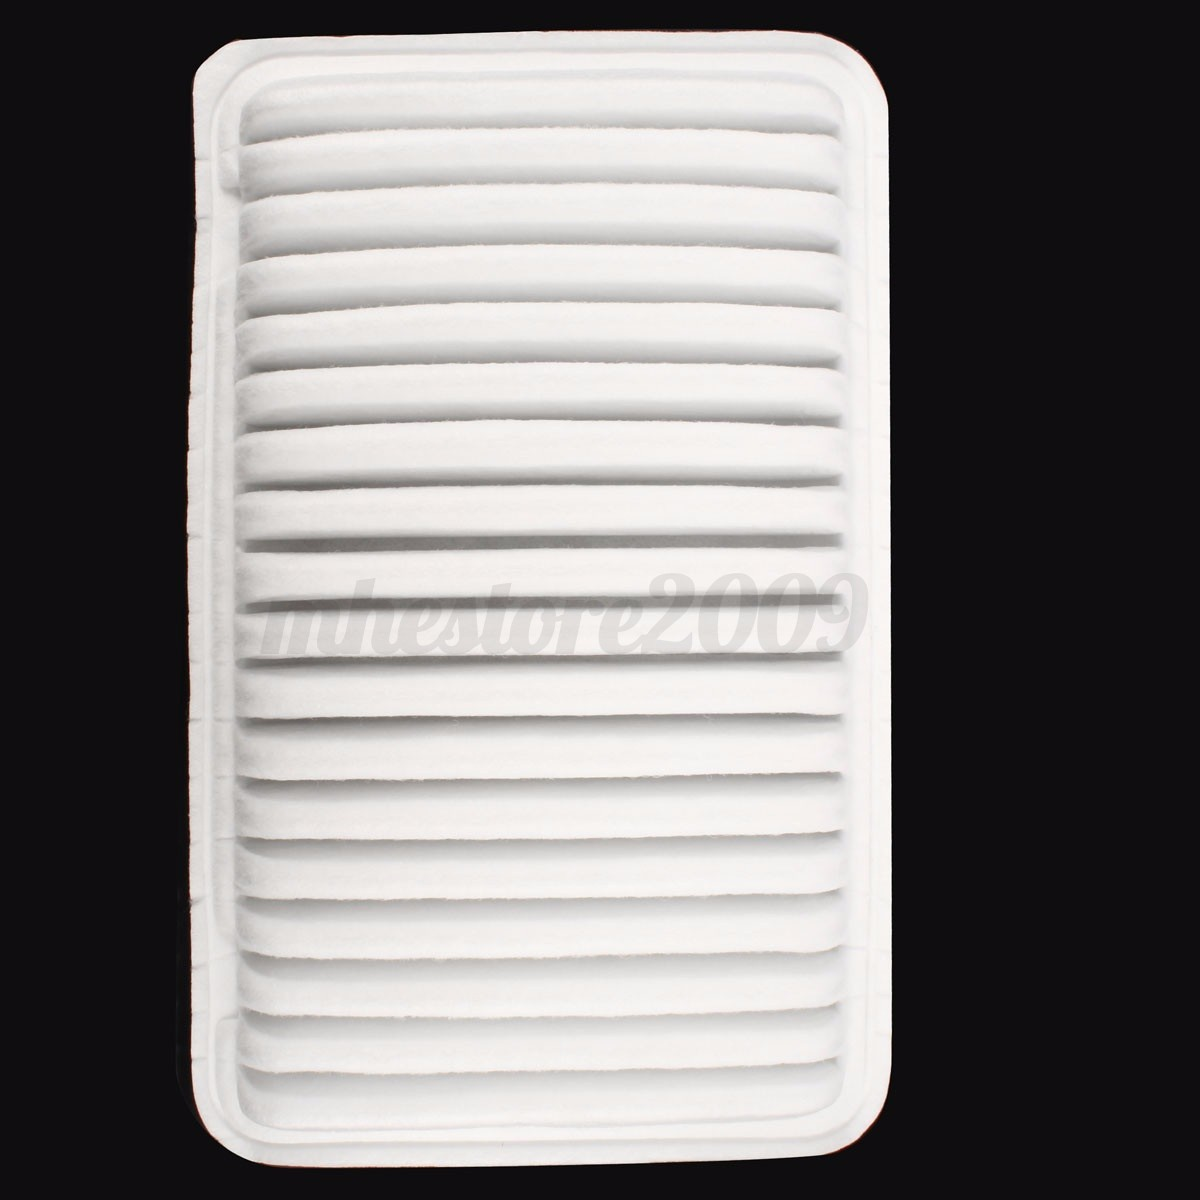 engine air intake filter ca9360 fit for camry avalon. Black Bedroom Furniture Sets. Home Design Ideas